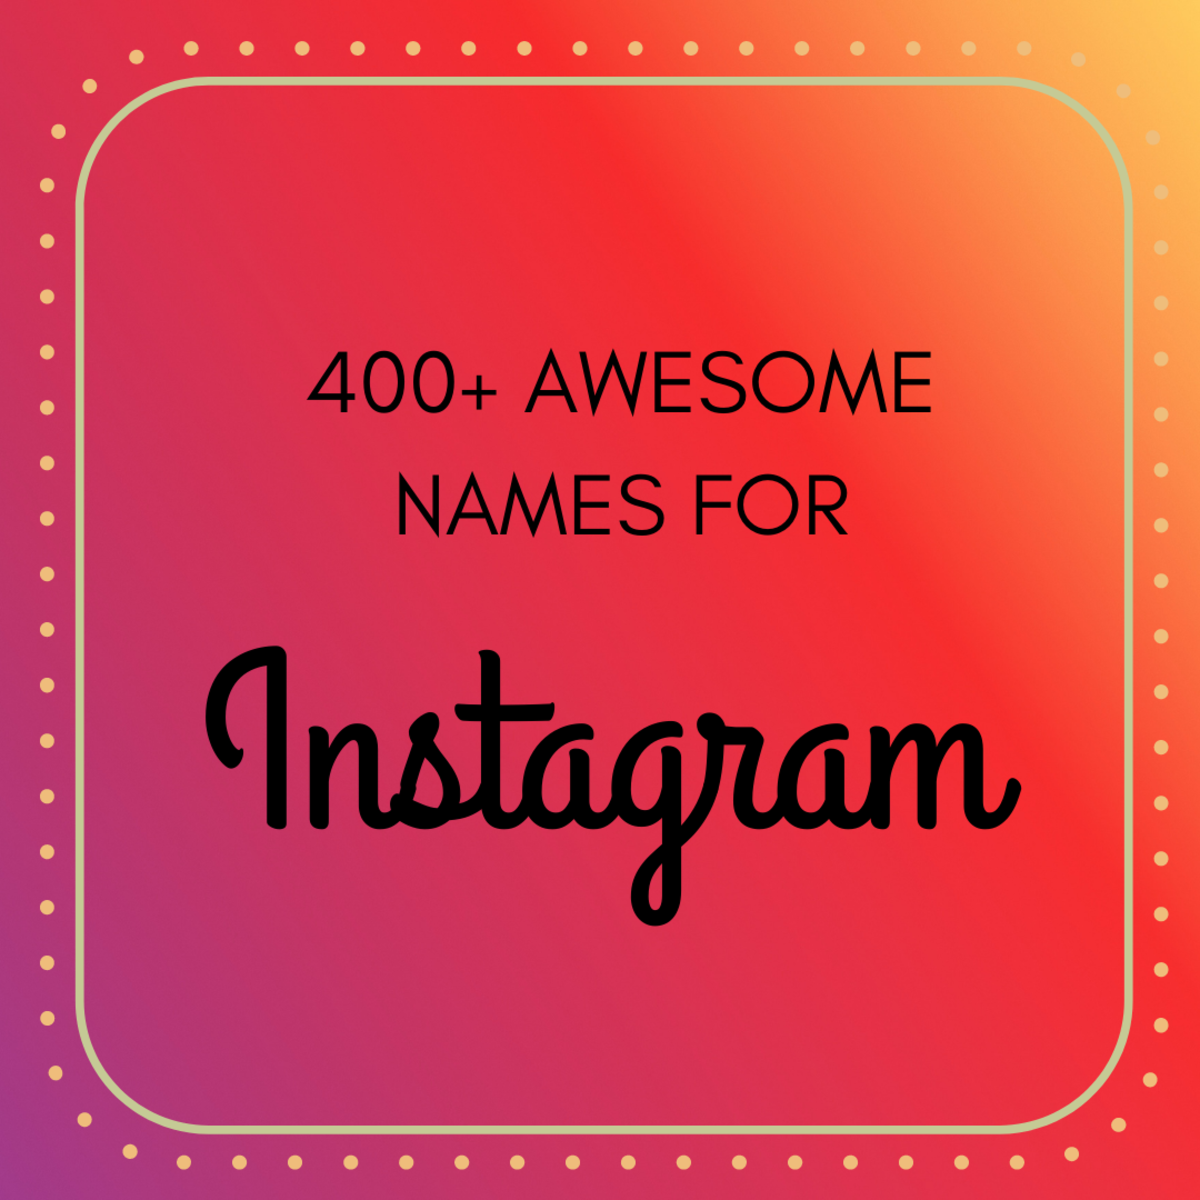 Does your Instagram name need a refresh?